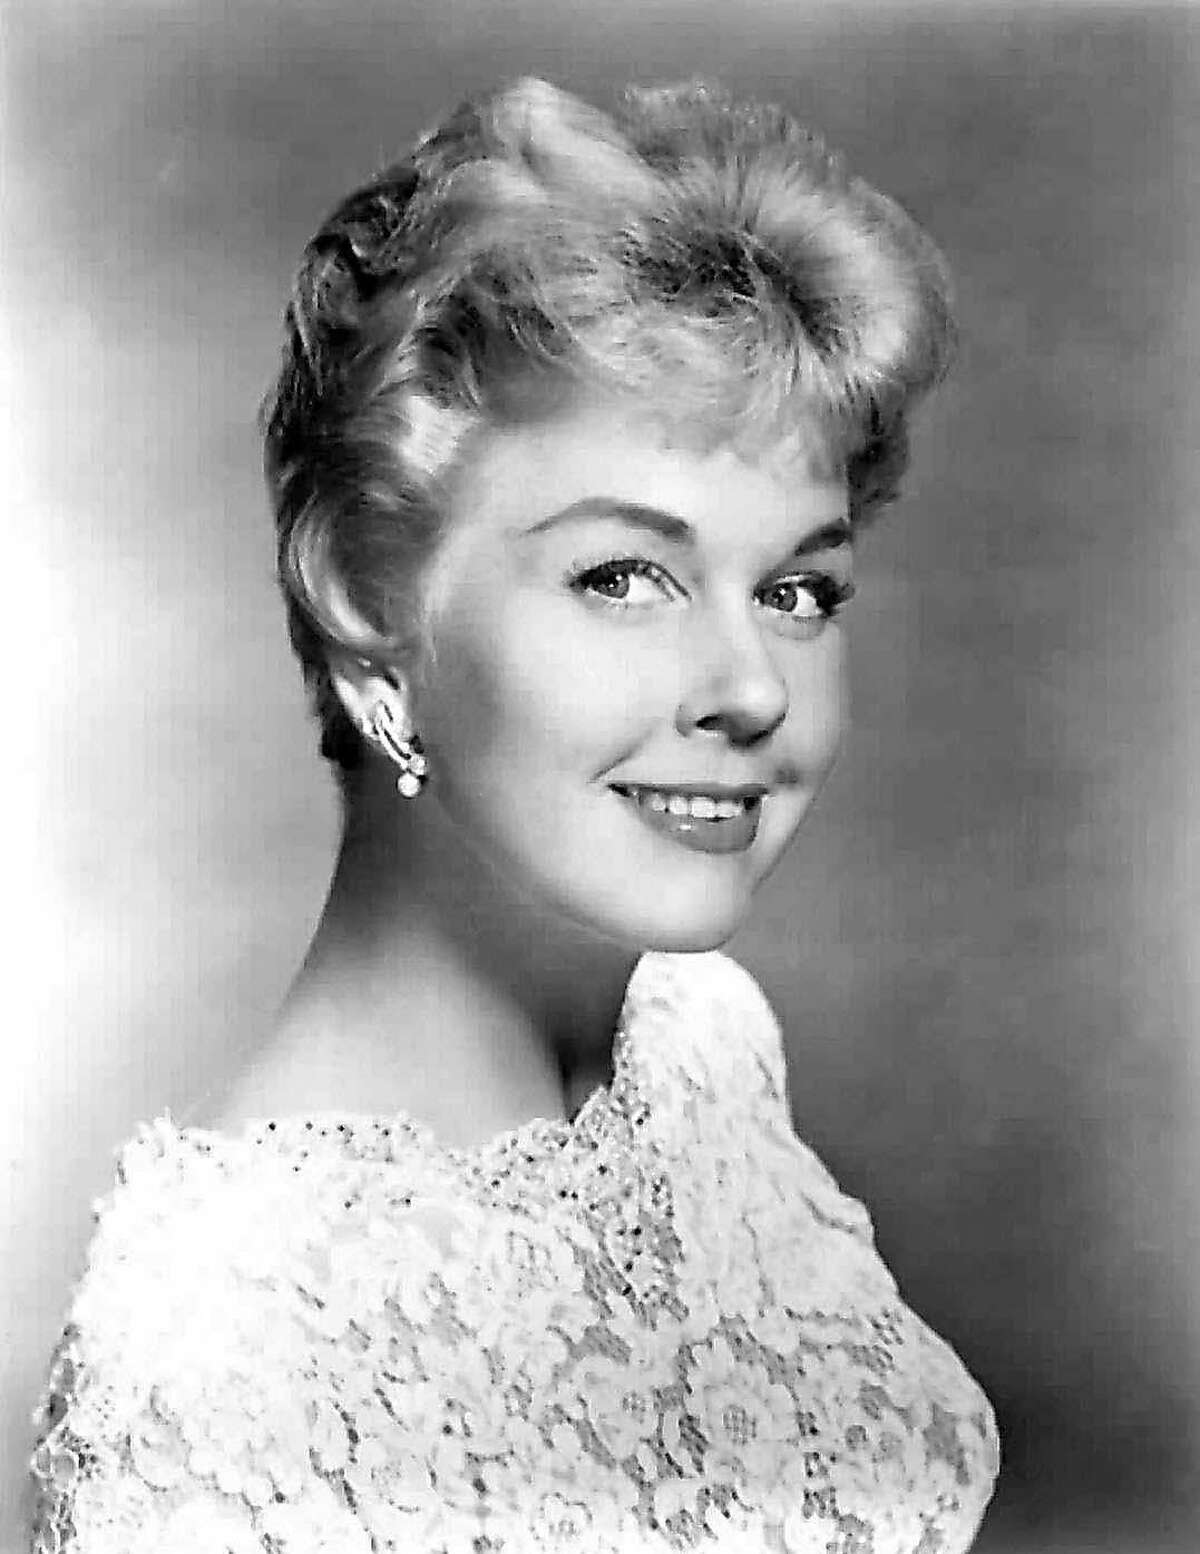 (FILES) This undated file photo shows US actress Doris Day, well known for her romantic/comedy roles in Hollywood films of the 1950's and early 1960's. - Hollywood icon Doris Day has died at the age of 97, her foundation announced on Monday, May 13, 2019. (Photo by HO / HO / AFP)HO/AFP/Getty Images